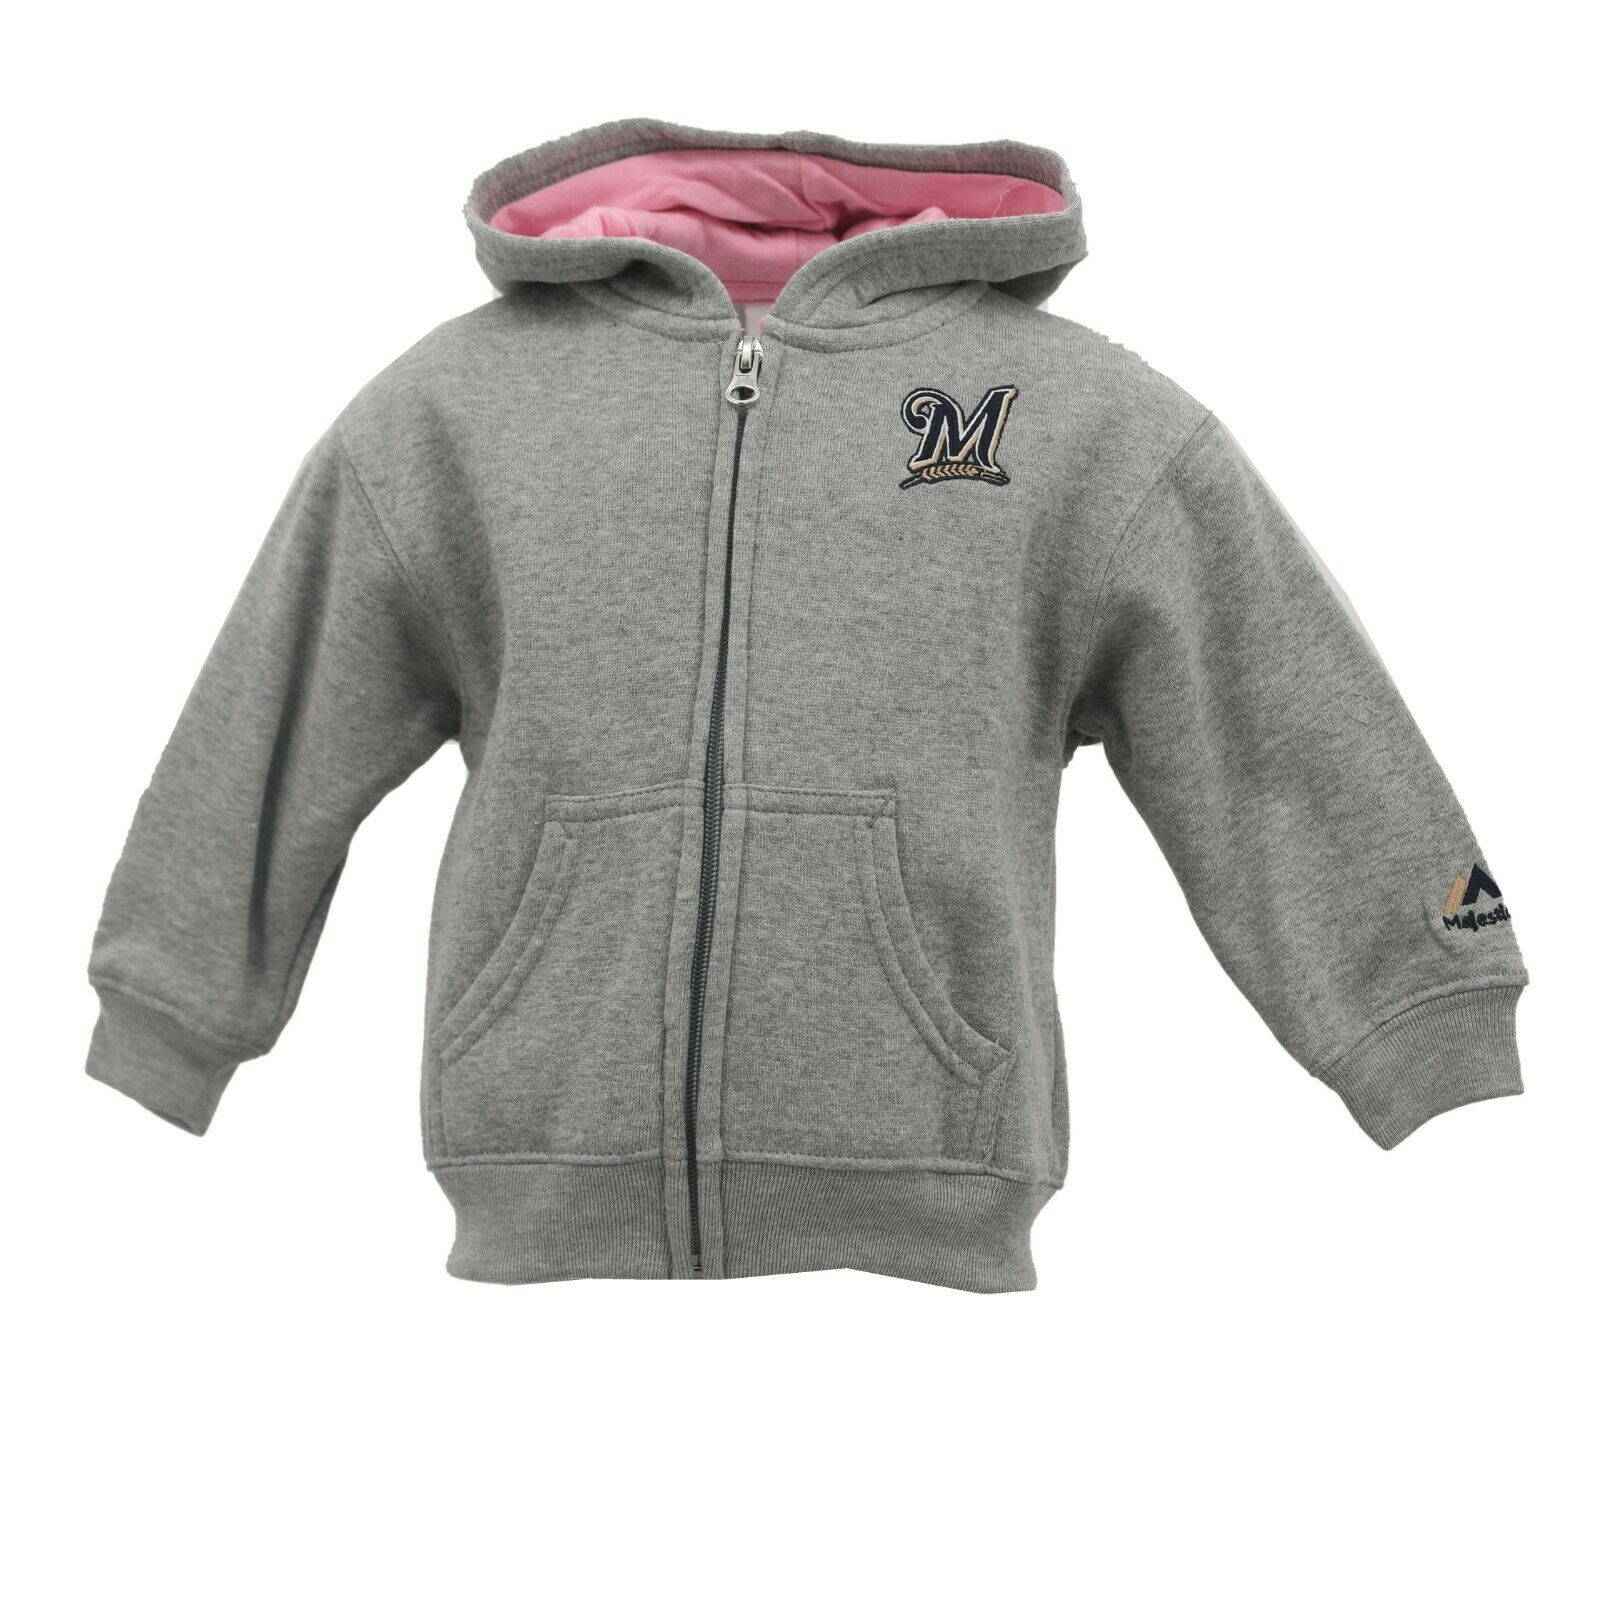 timeless design c9f21 5b338 Details about Milwaukee Brewers Baby MLB Infant Toddler Girls Size Full Zip  Hooded Sweatshirt